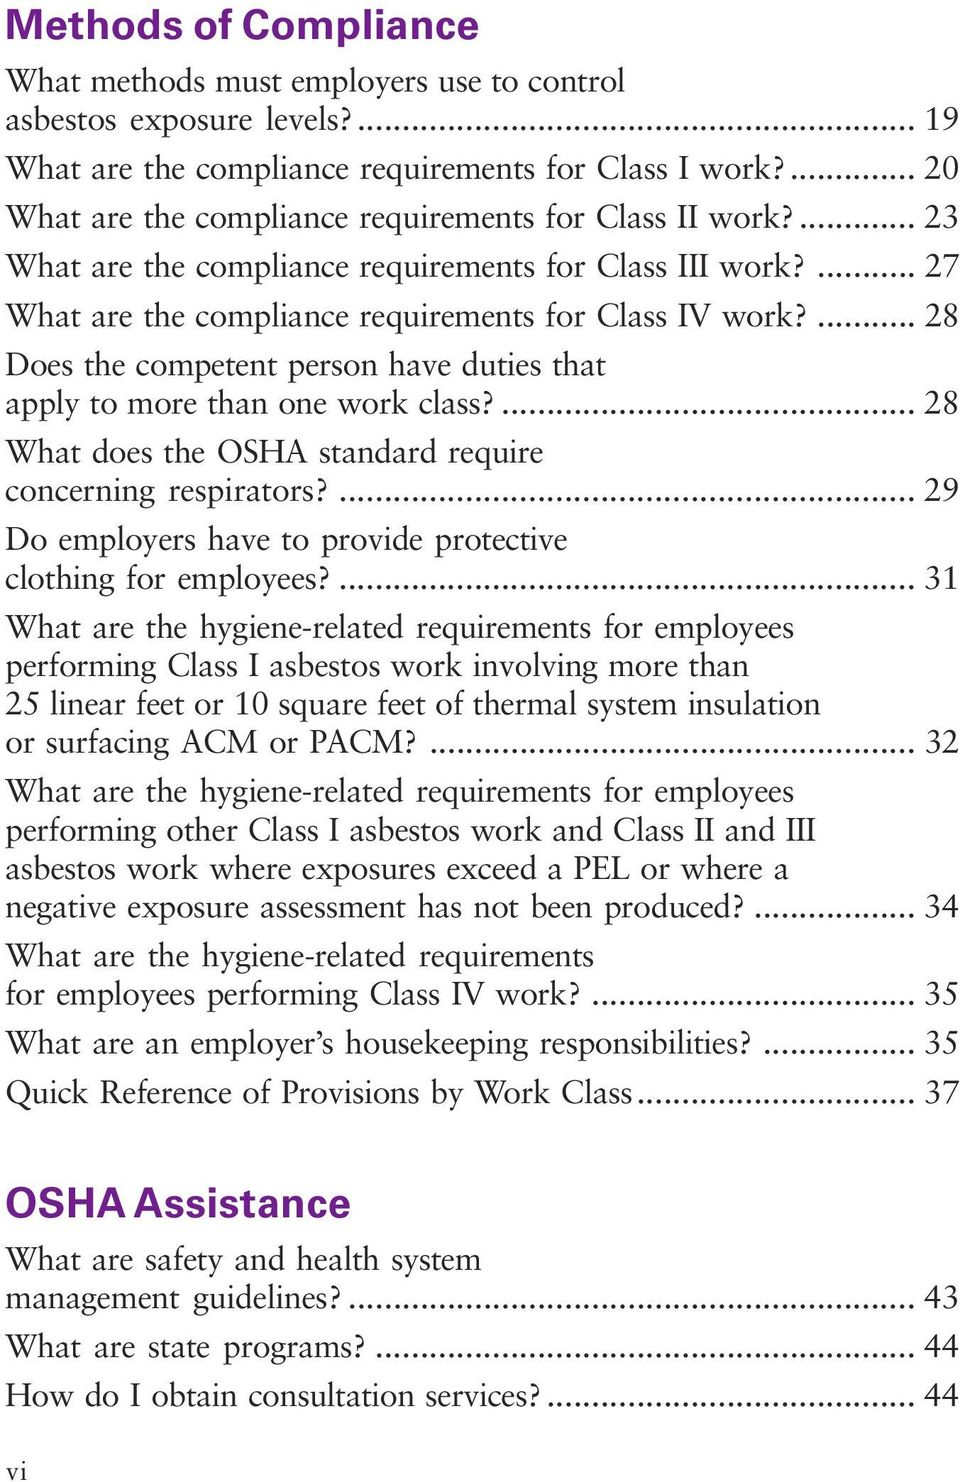 ... 28 Does the competent person have duties that apply to more than one work class?... 28 What does the OSHA standard require concerning respirators?